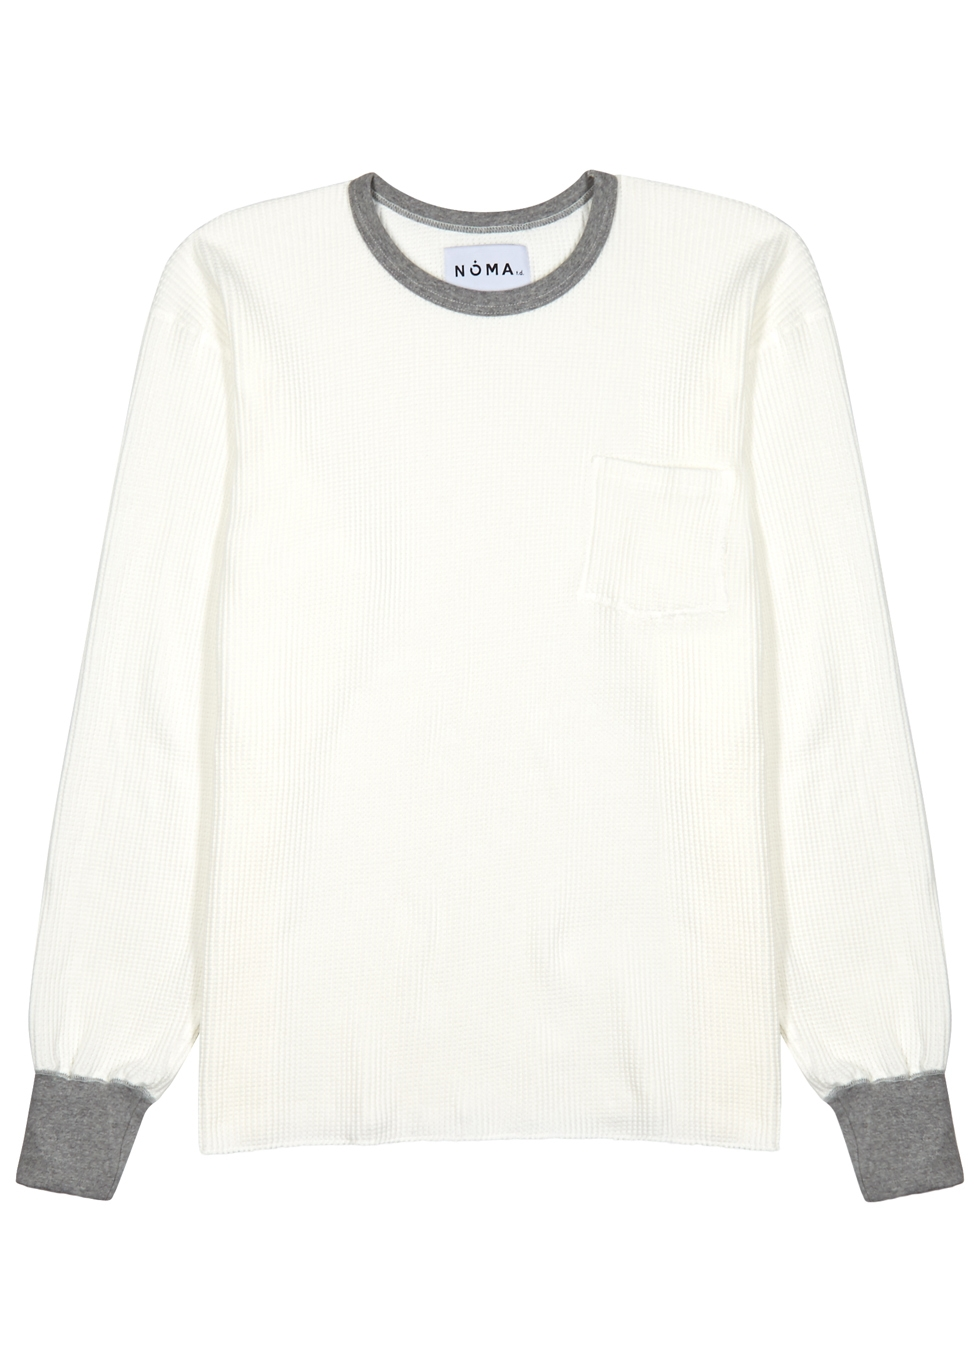 NOMA T.D OFF-WHITE WAFFLE-KNIT TOP